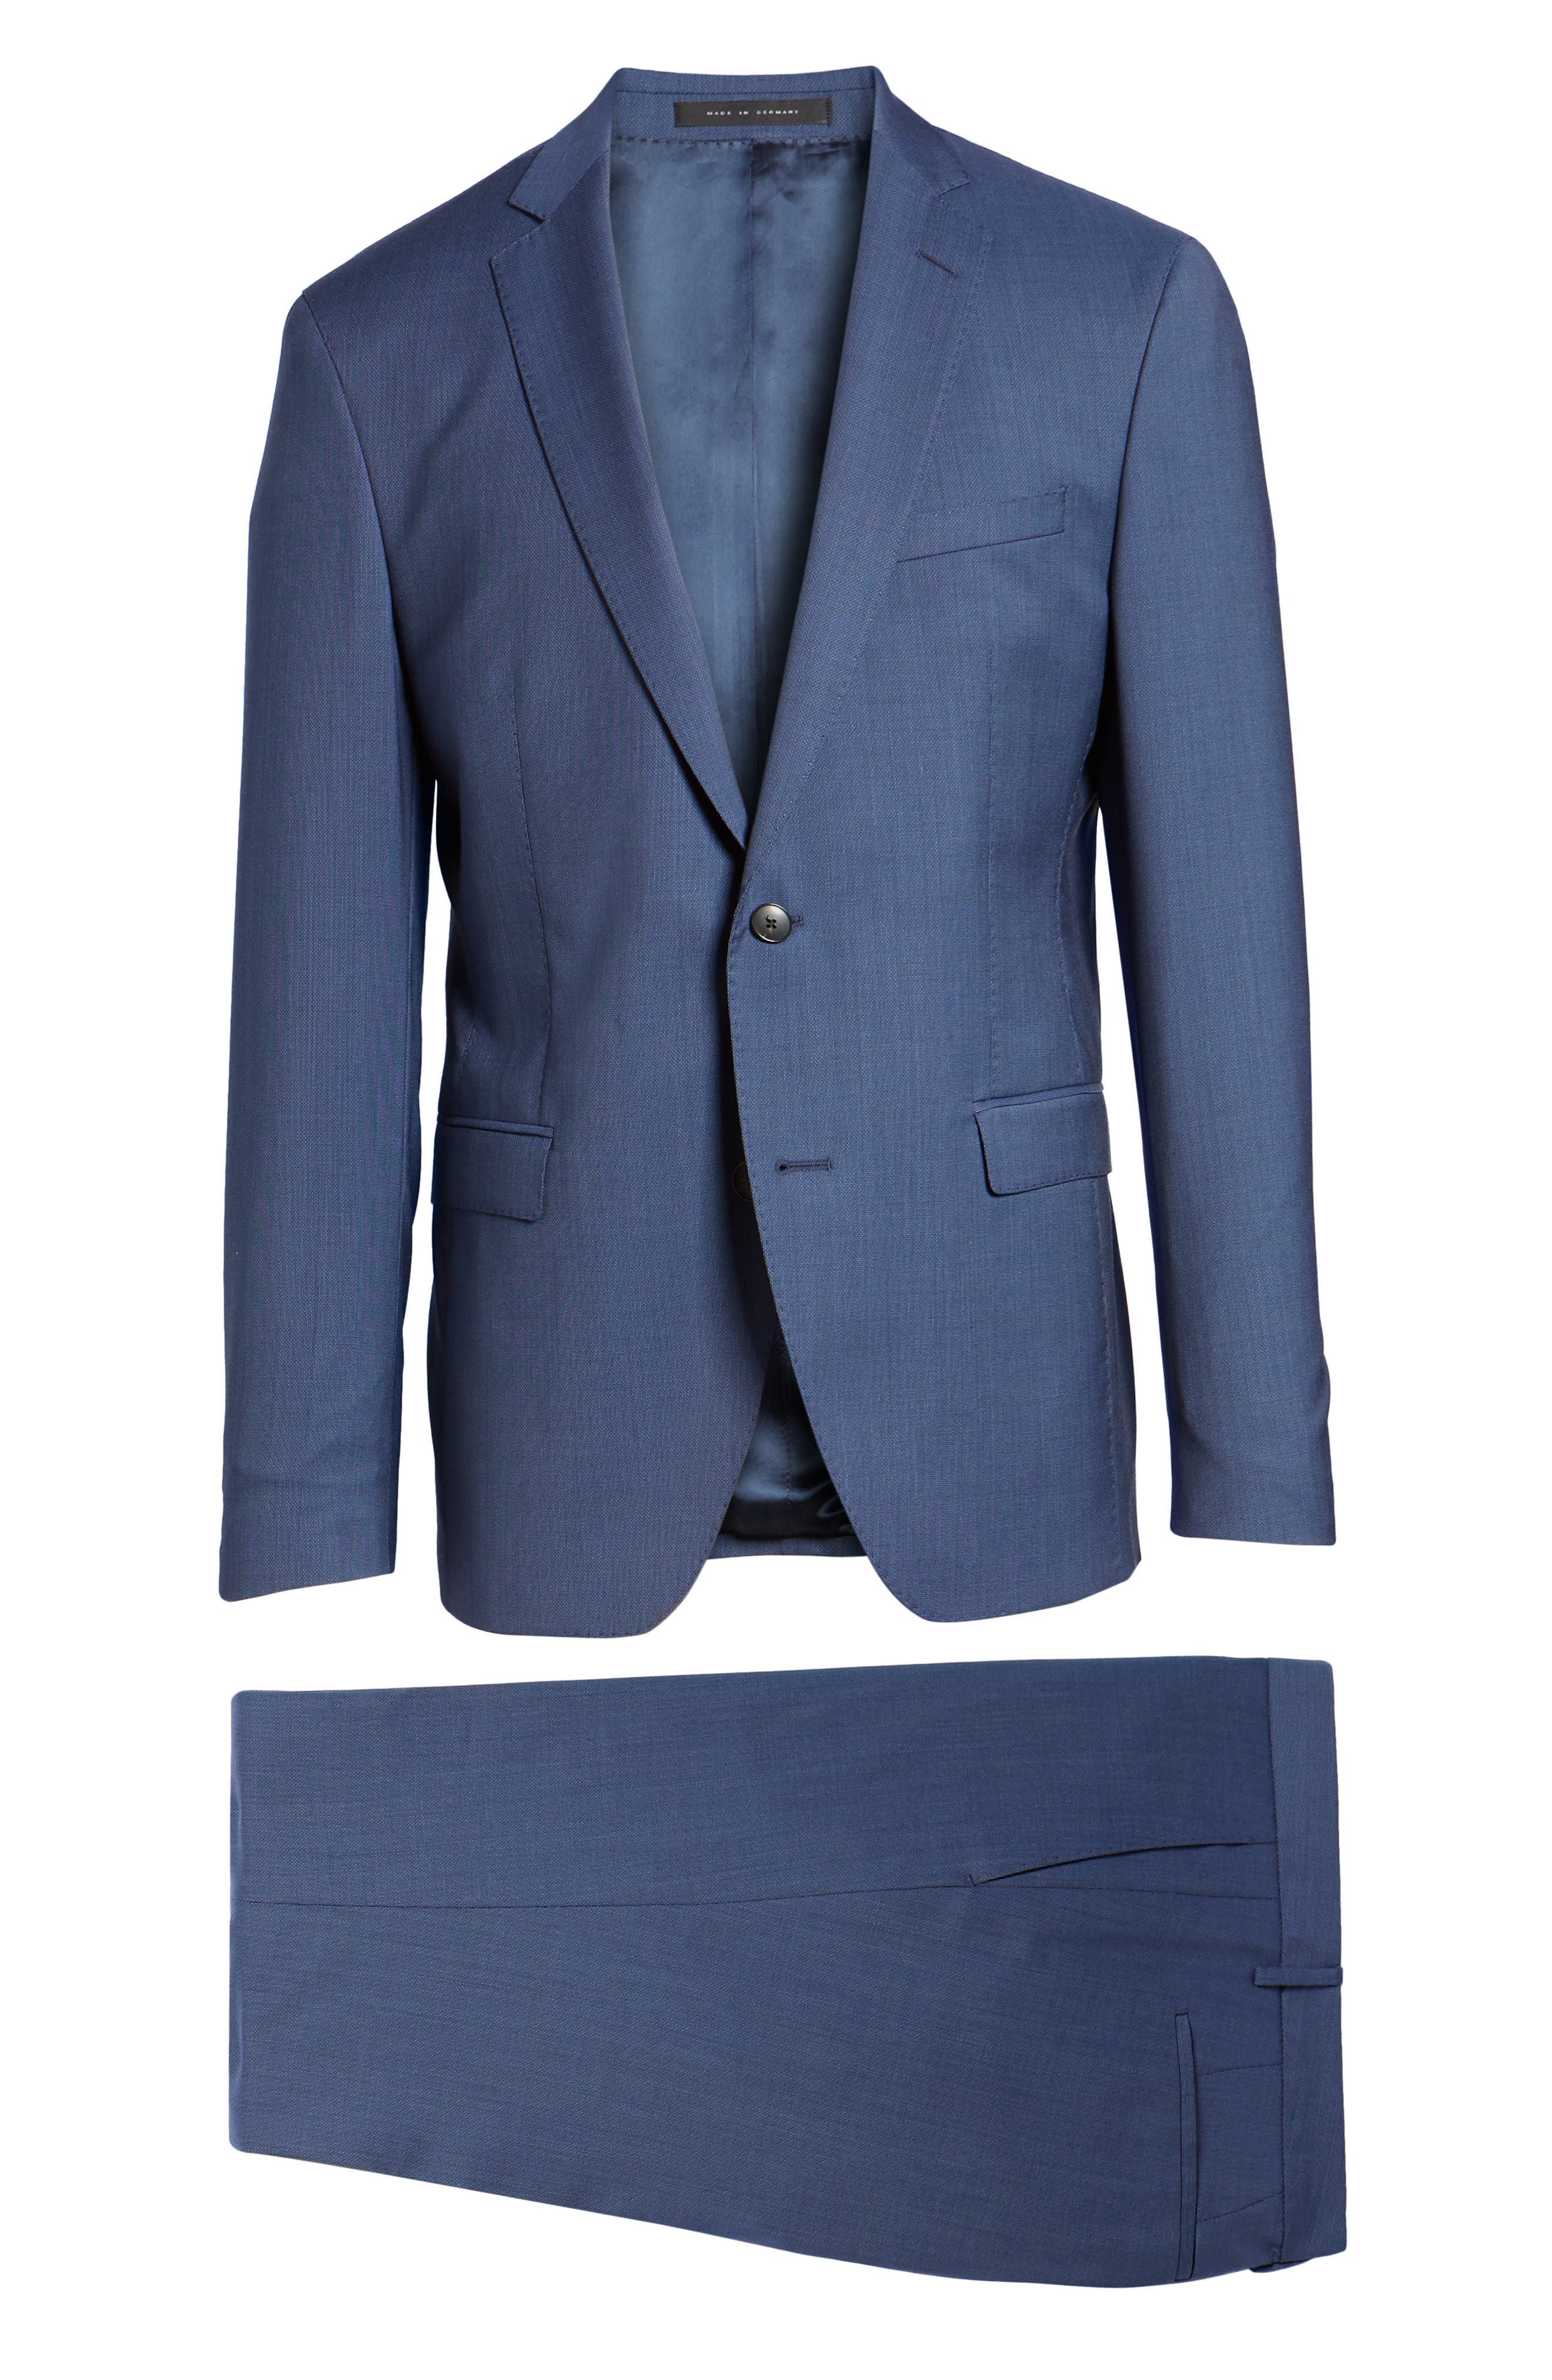 Reyno/Wave Extra Trim Fit Solid Wool Suit,                             Alternate thumbnail 8, color,